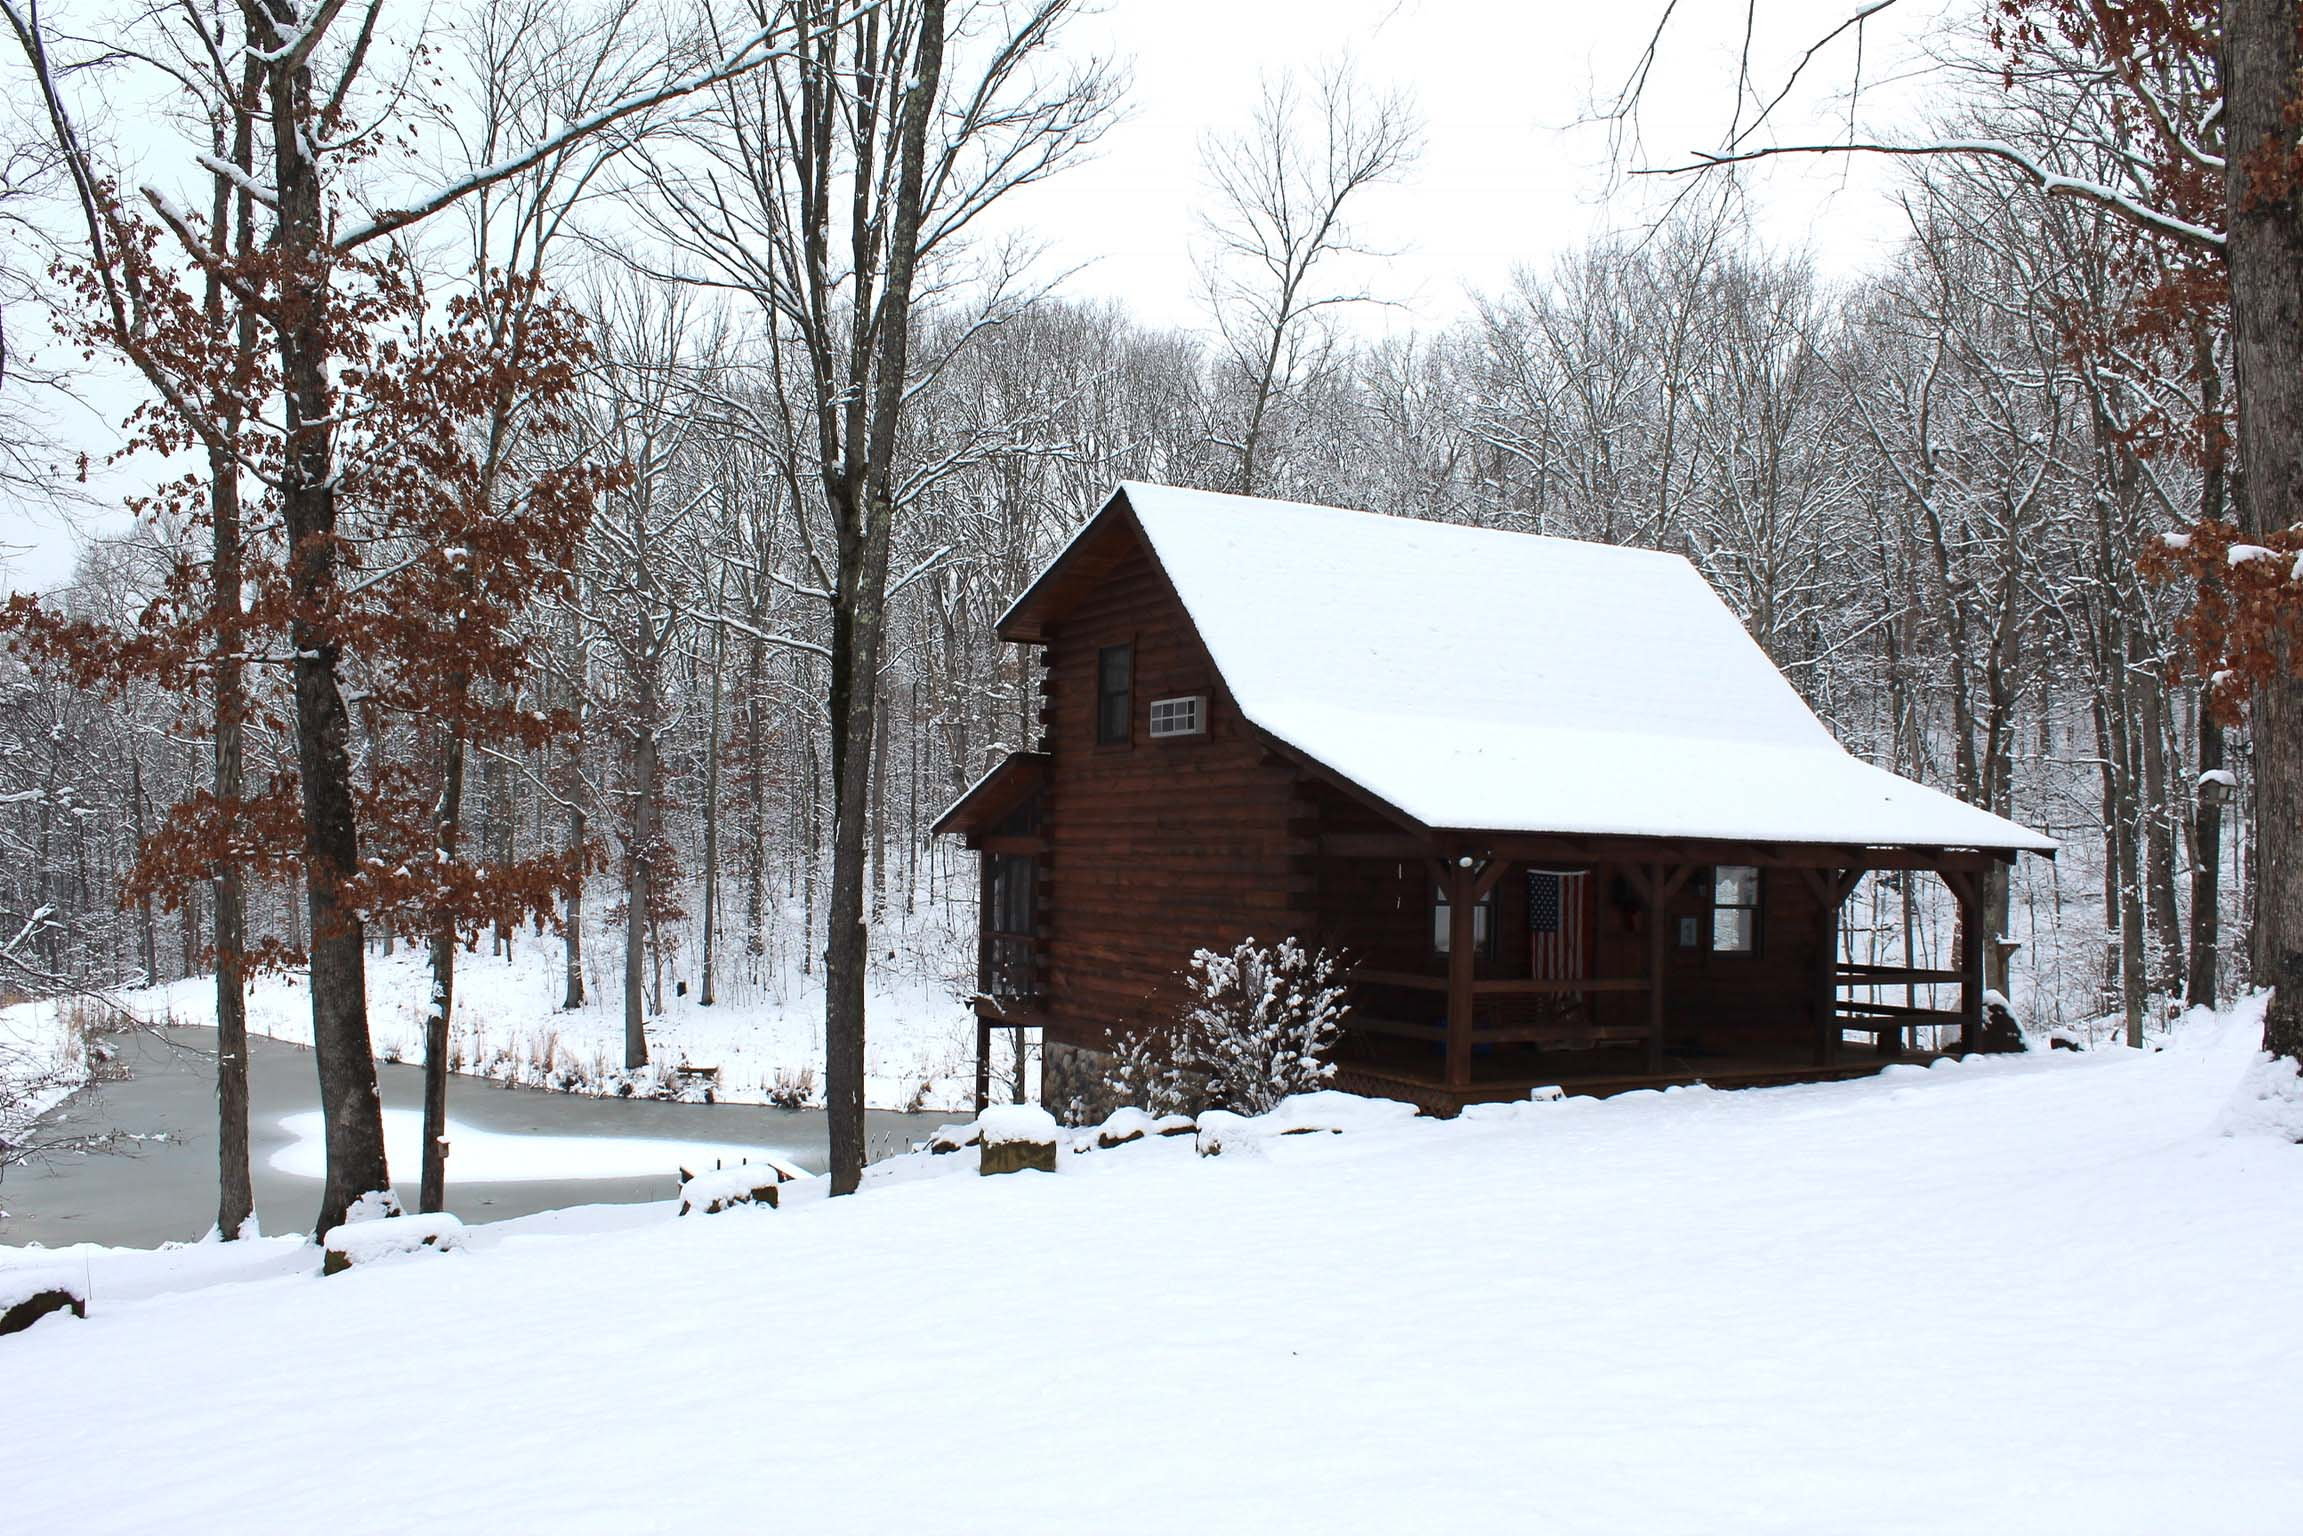 The Blue Jay Cabin - The change of season accentuates the beauty of this scenic and serene landscape.